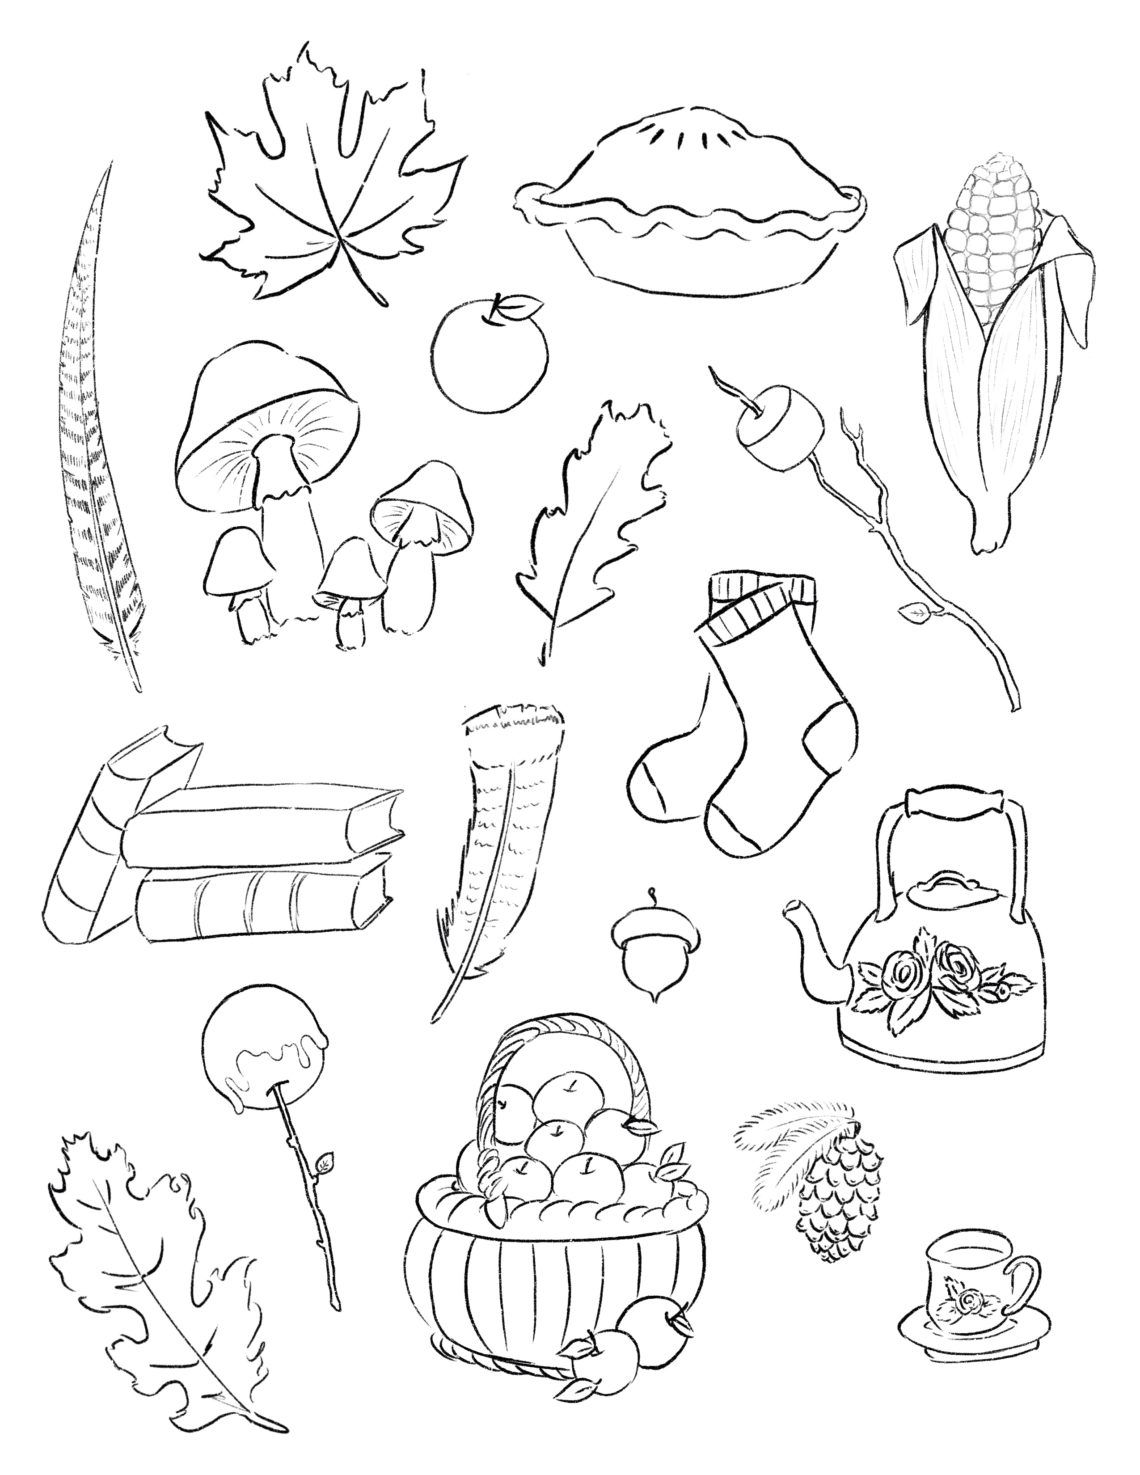 Free Autumn Printable Stickers And Coloring Page Cottage Chronicles Coloring Pages Printable Stickers Autumn Stickers